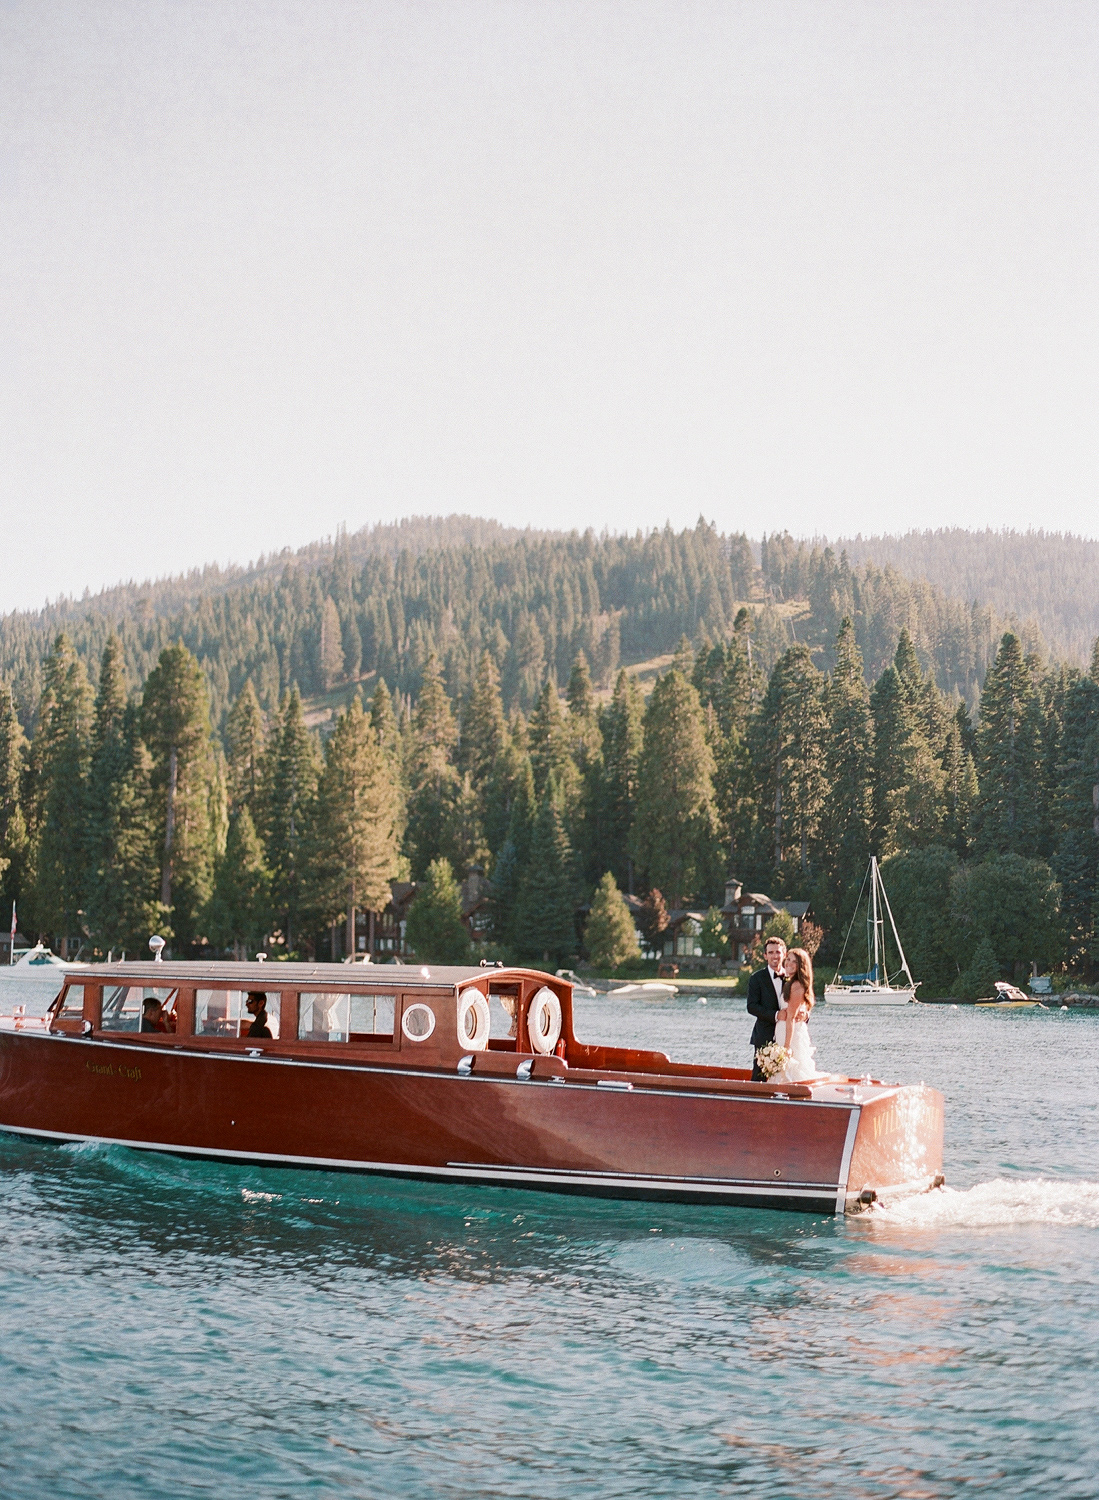 Natalie and Grant wedding bride and groom portrait on red boat